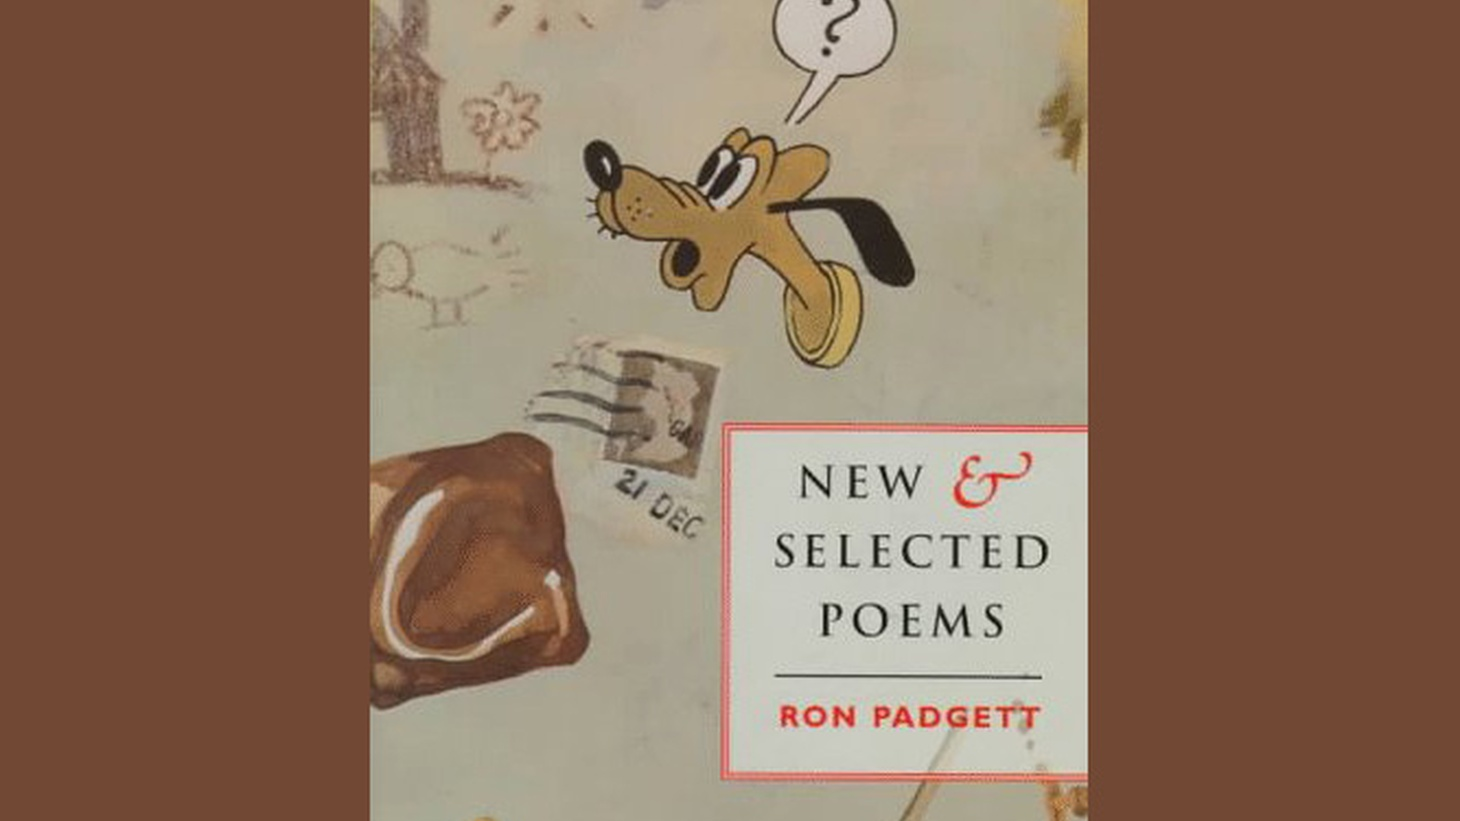 Poet Ron Padgett discusses his selected poems.